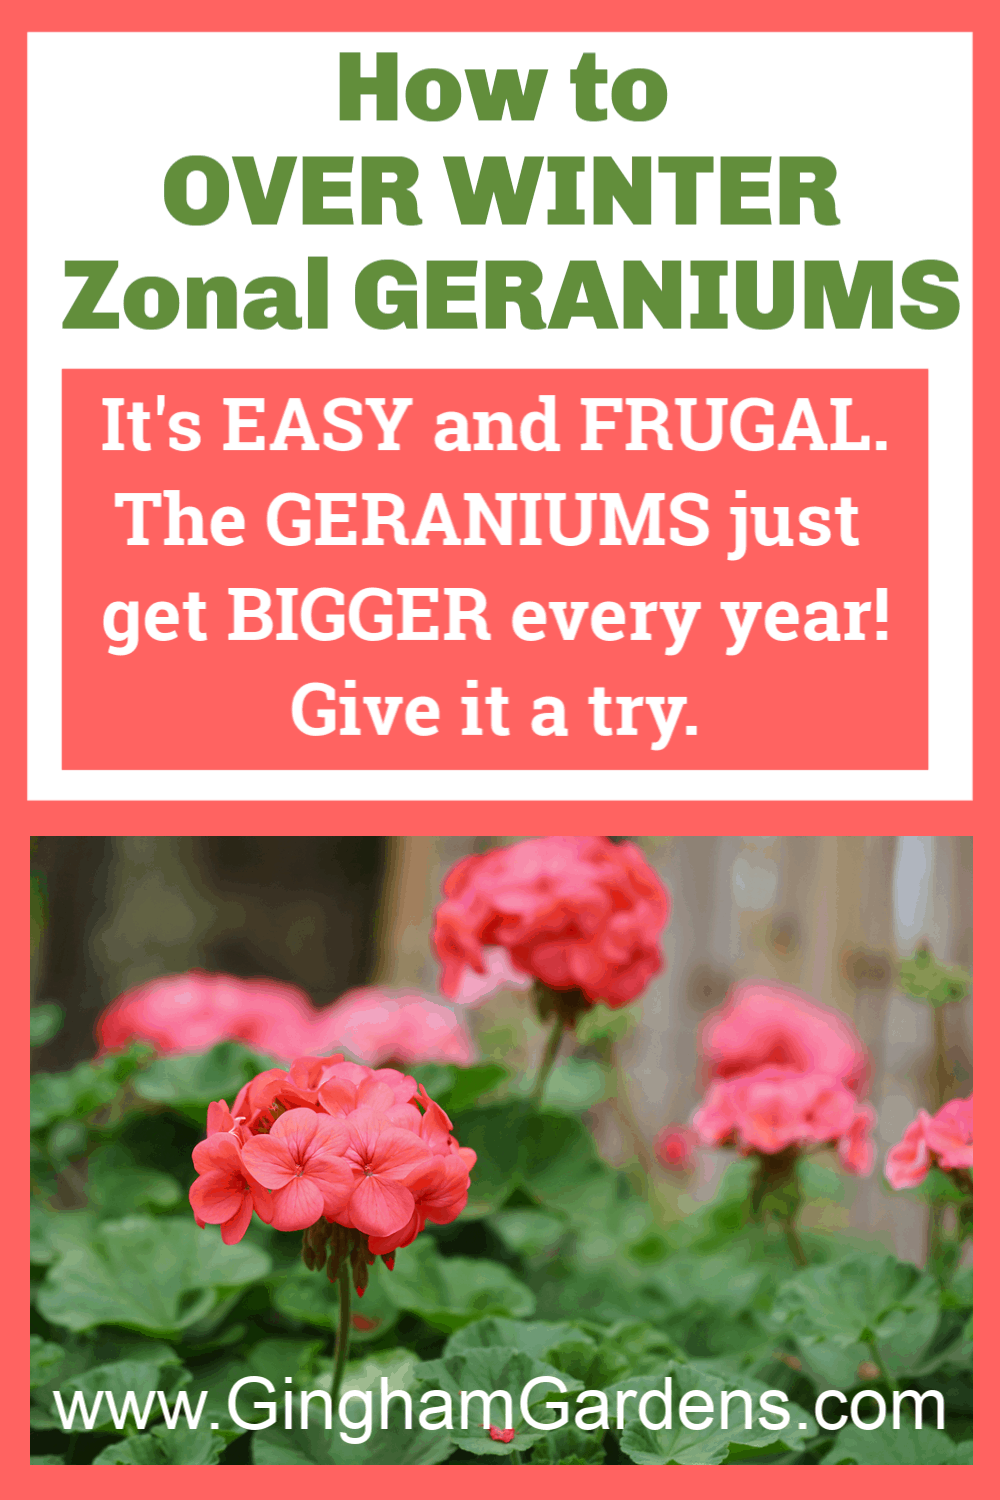 Image of Geraniums with text overlay - How to overwinter zonal geraniums